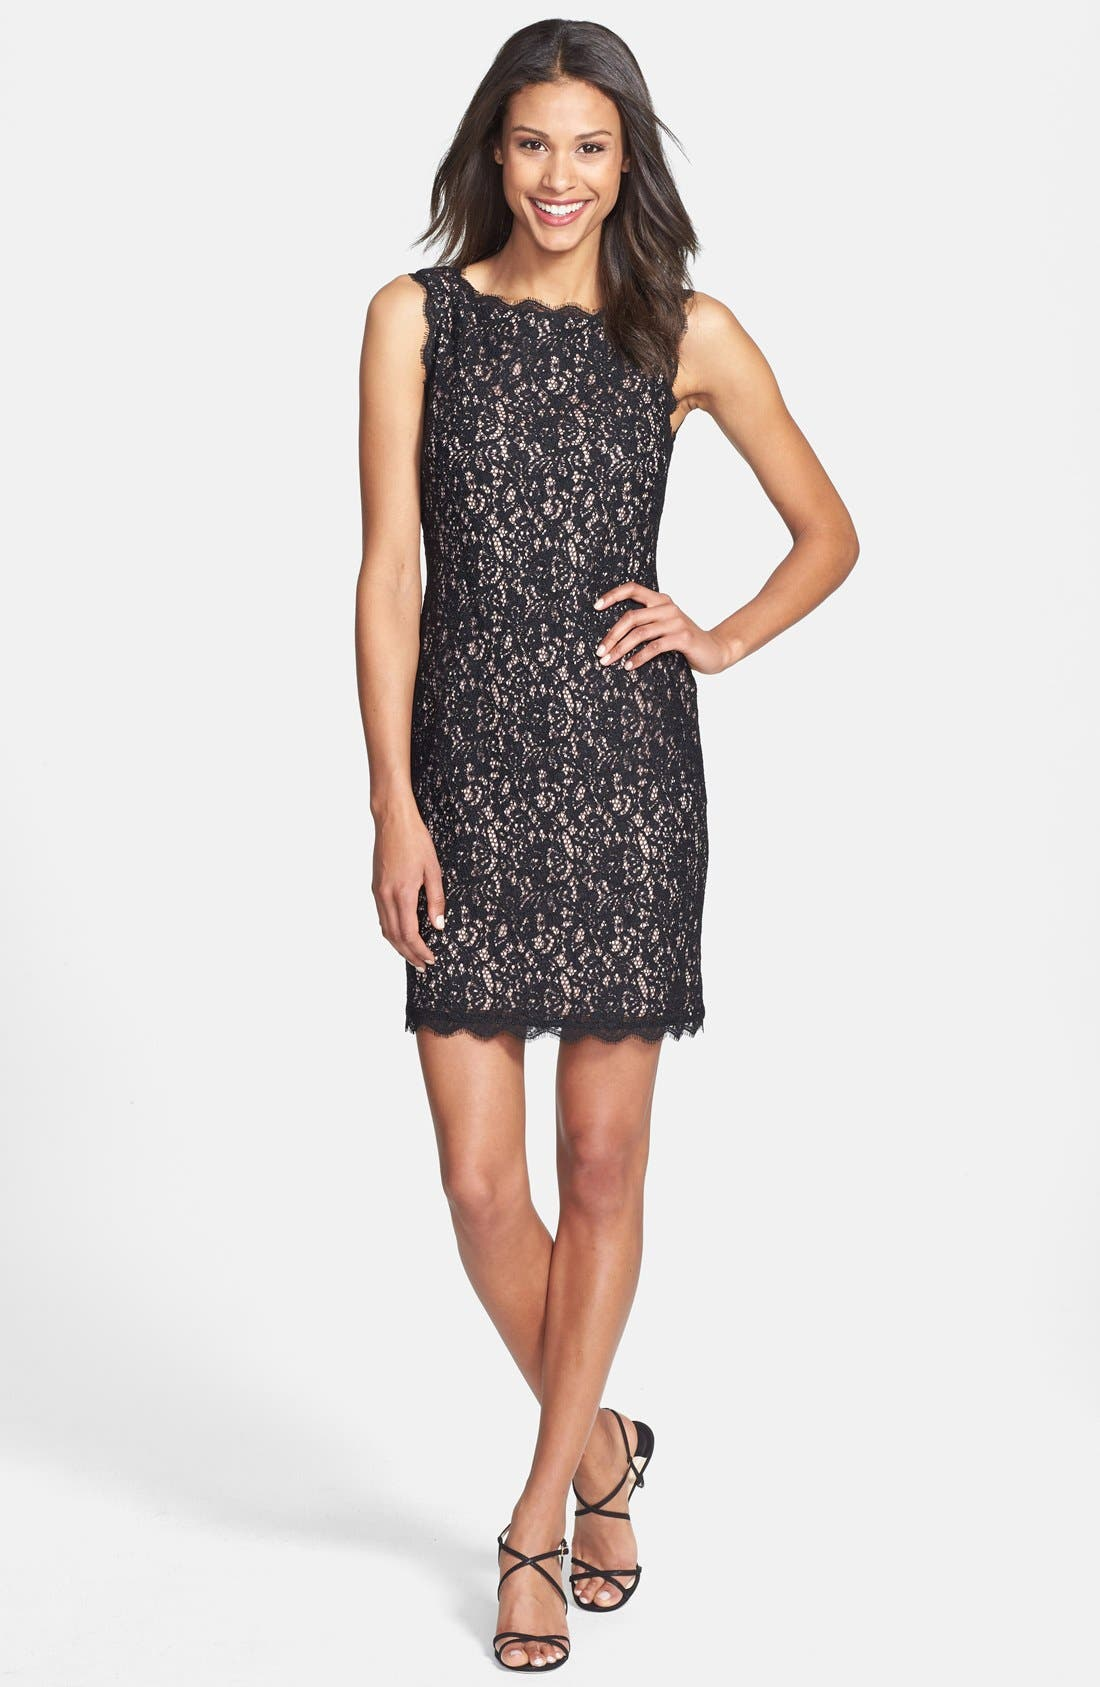 Boatneck Lace Sheath Dress,                             Alternate thumbnail 10, color,                             015